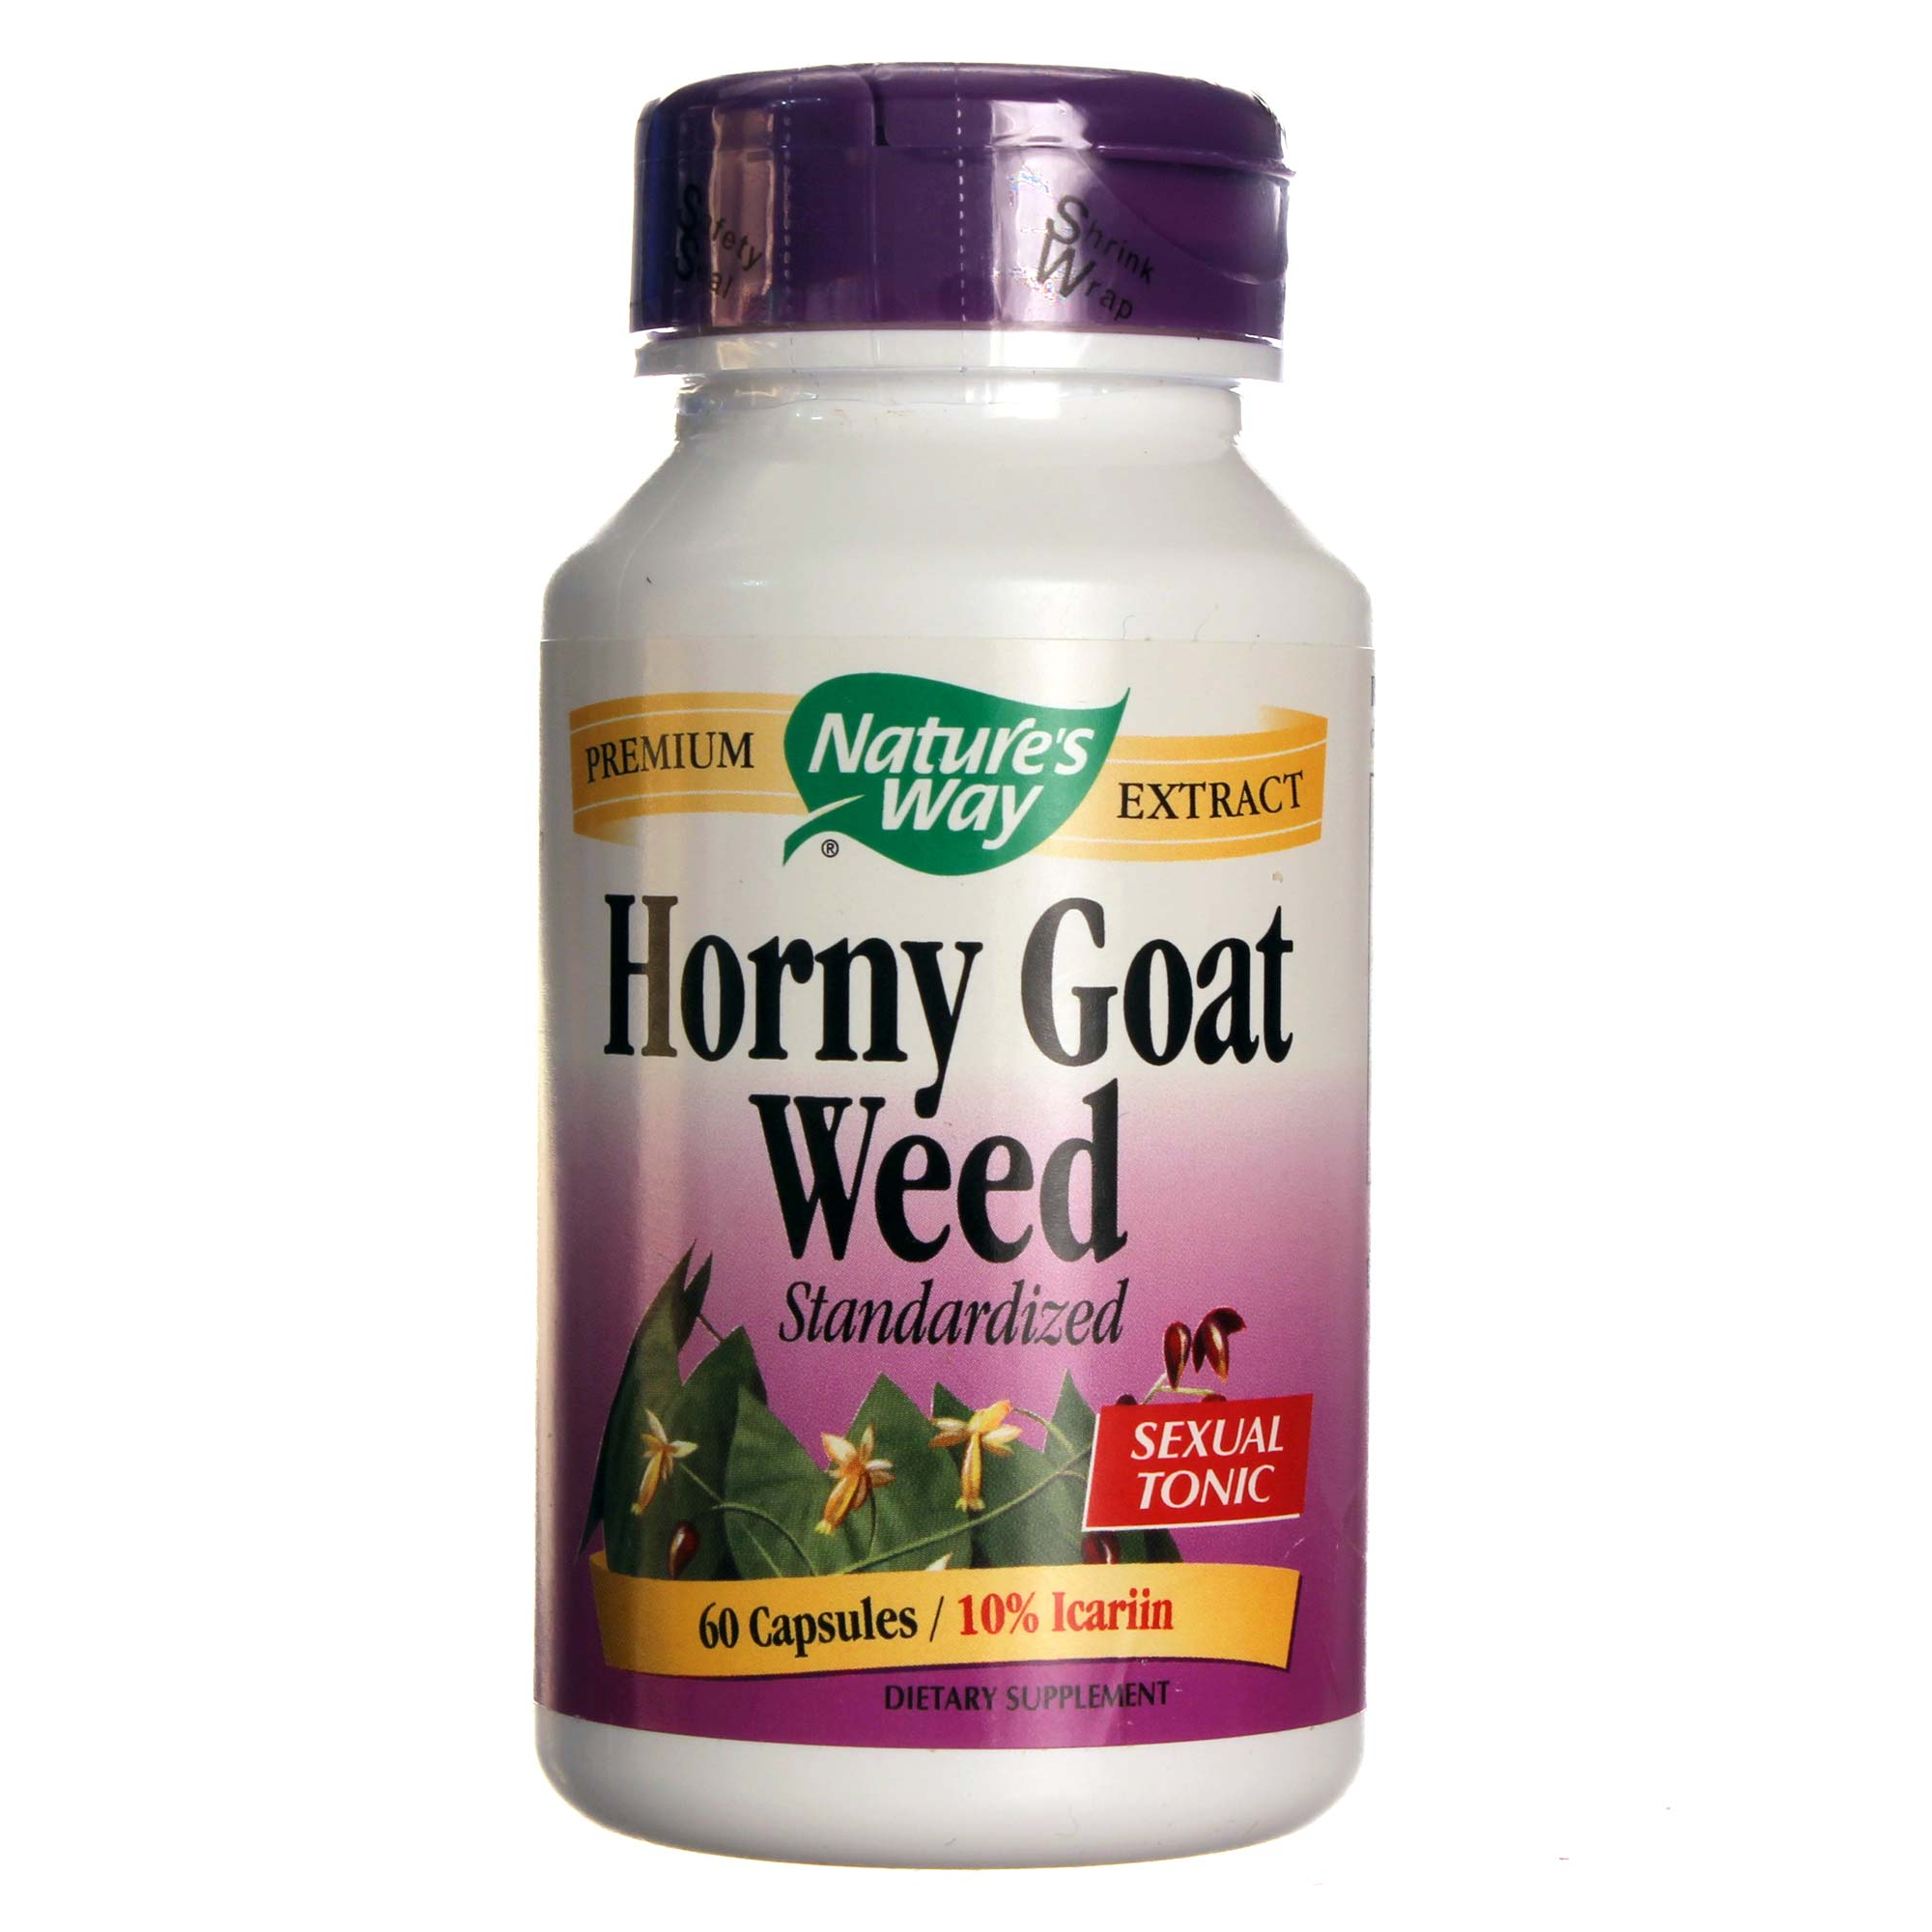 Horny Goat Weed Standardized. Hover to zoom